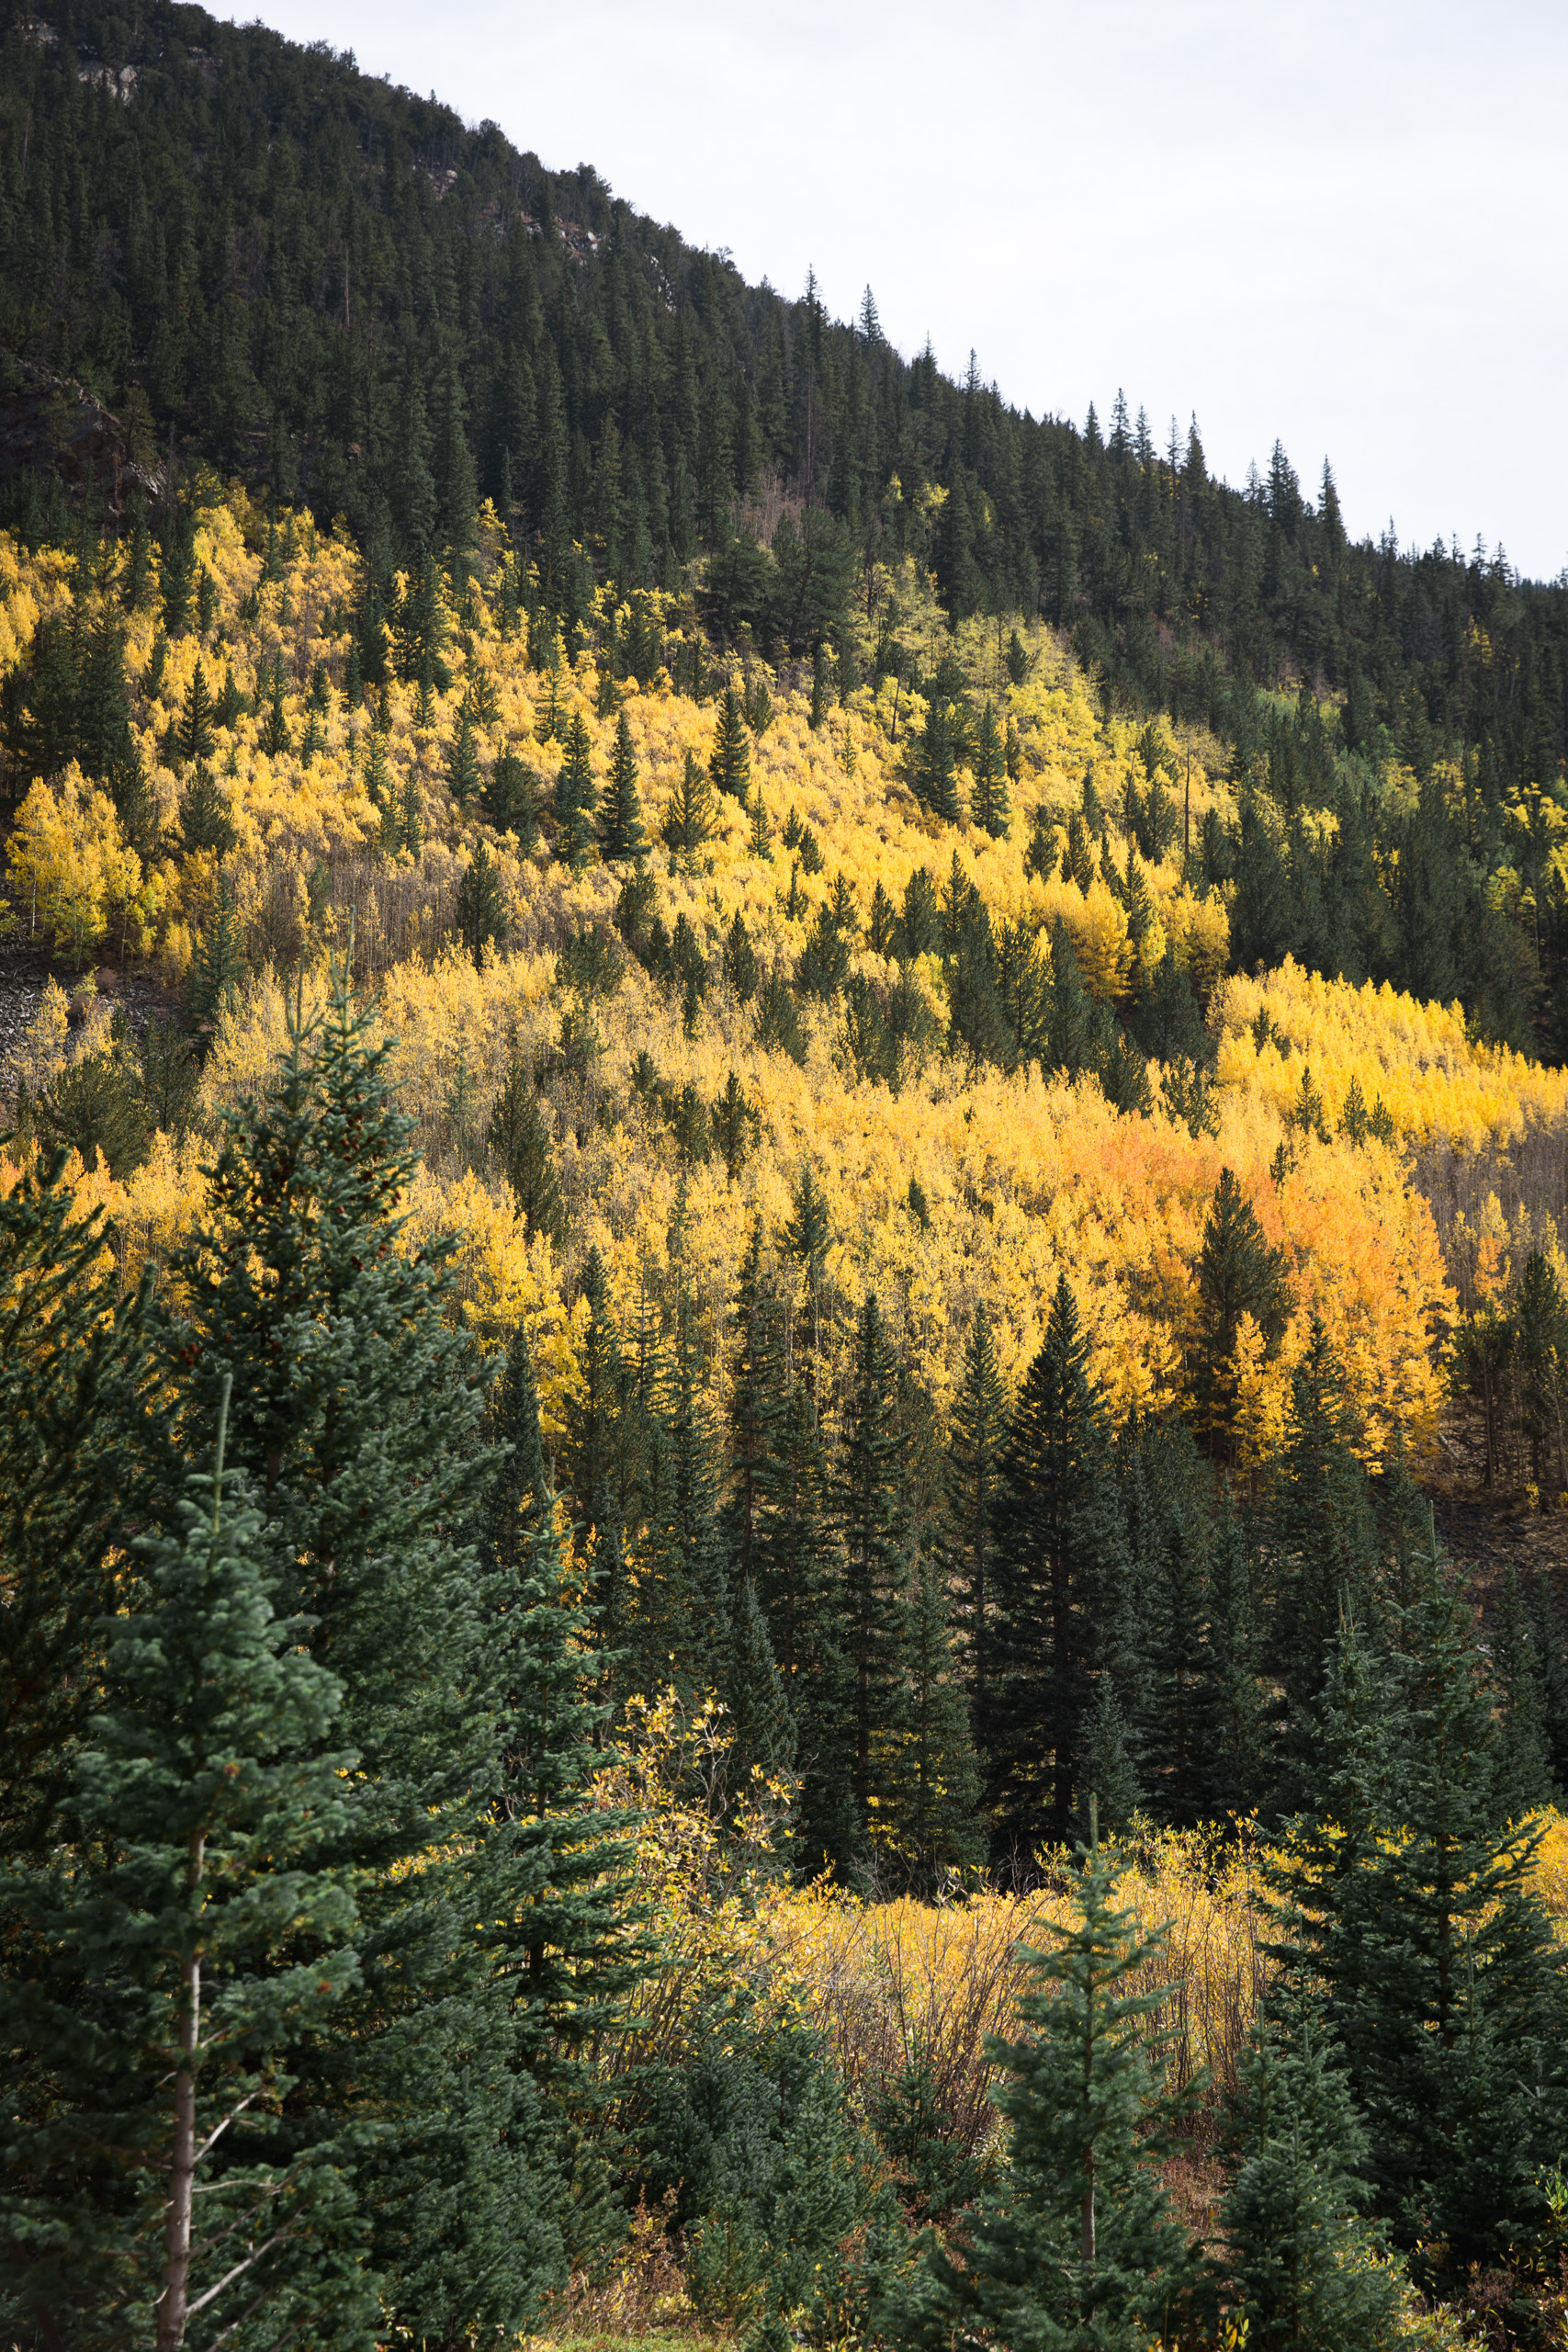 Guanella Pass in Colorado is full of yellow aspen trees and green pines